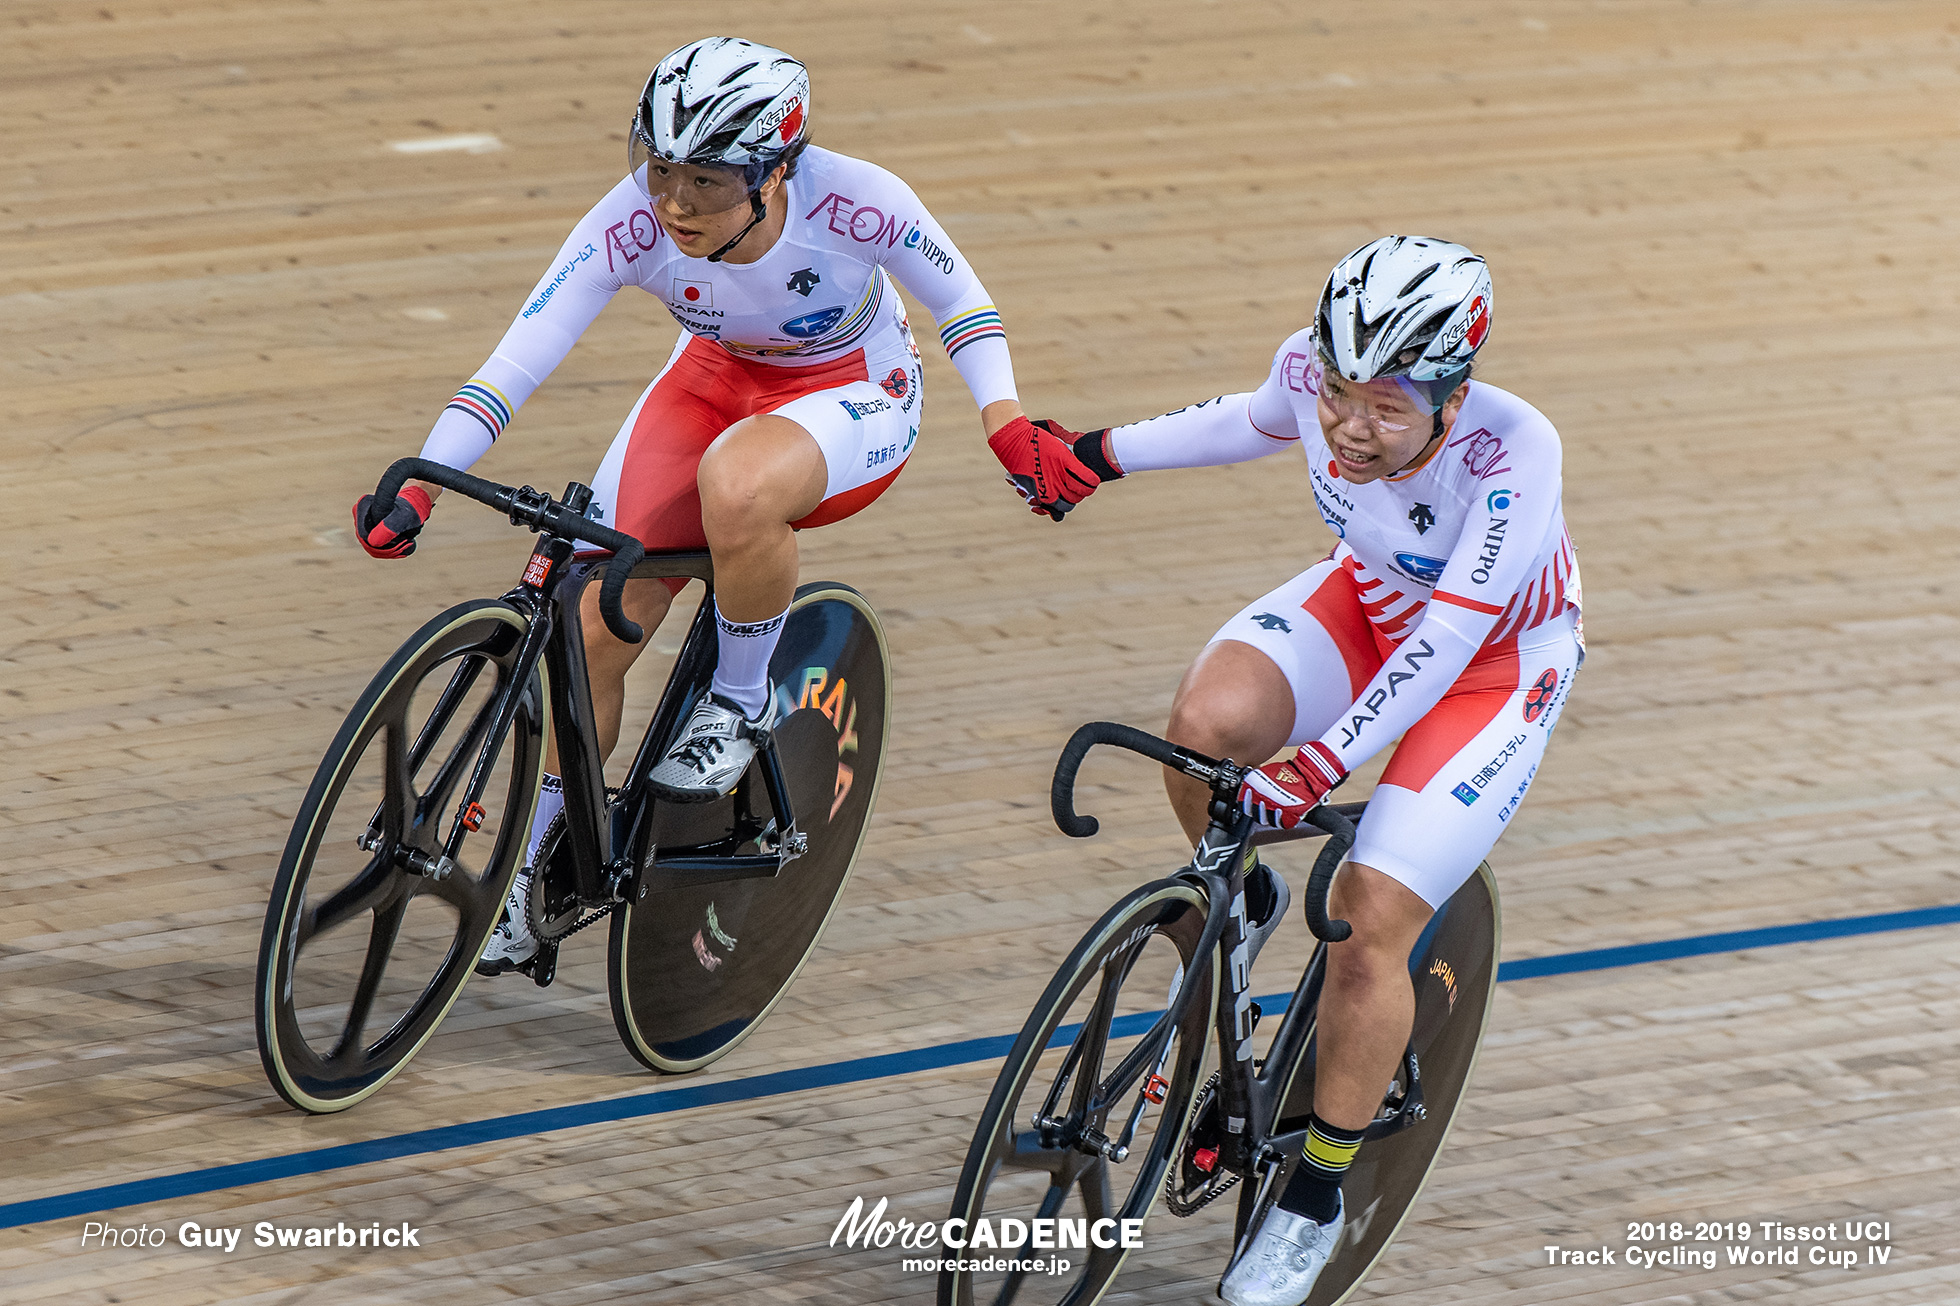 Women's Madison/Final/2018-2019 Track Cycling World Cup IV London